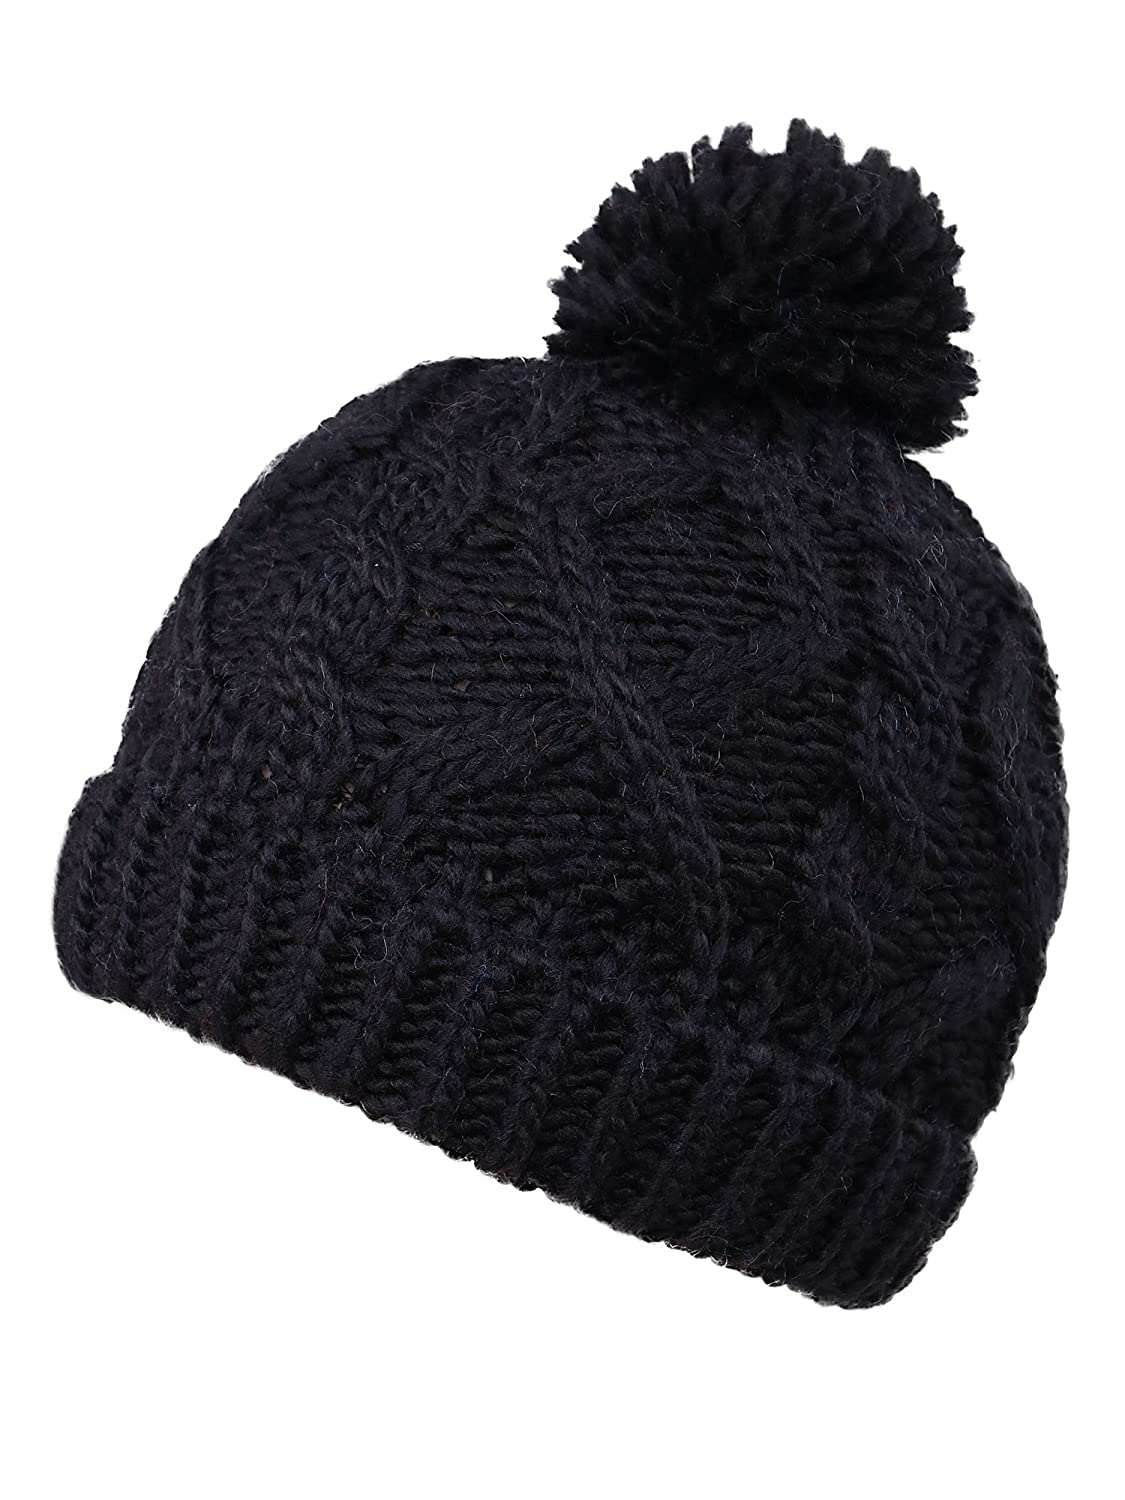 Amazon.com  YoungLove Kids  Winter Cable Knit Pom Pom Beanie Winter Hat Cap  for Boys Girls b792ffc9af9